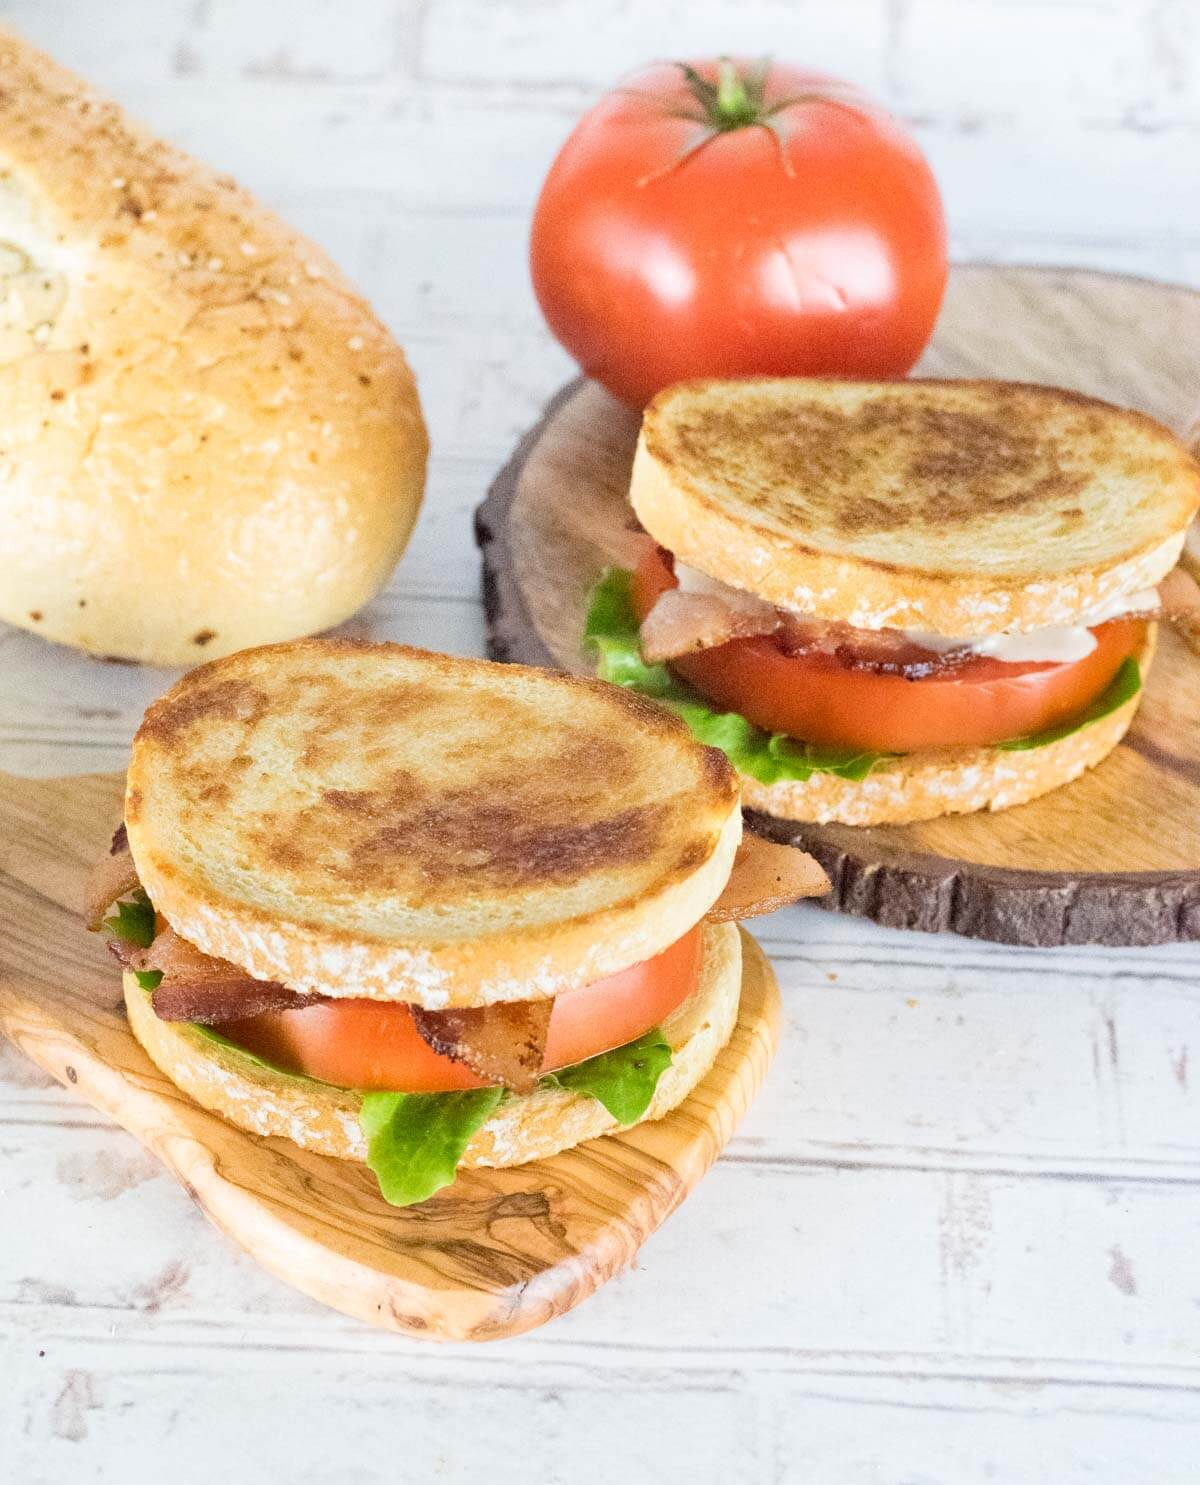 Two Gourmet BLTs with fresh bread on wooden trays.